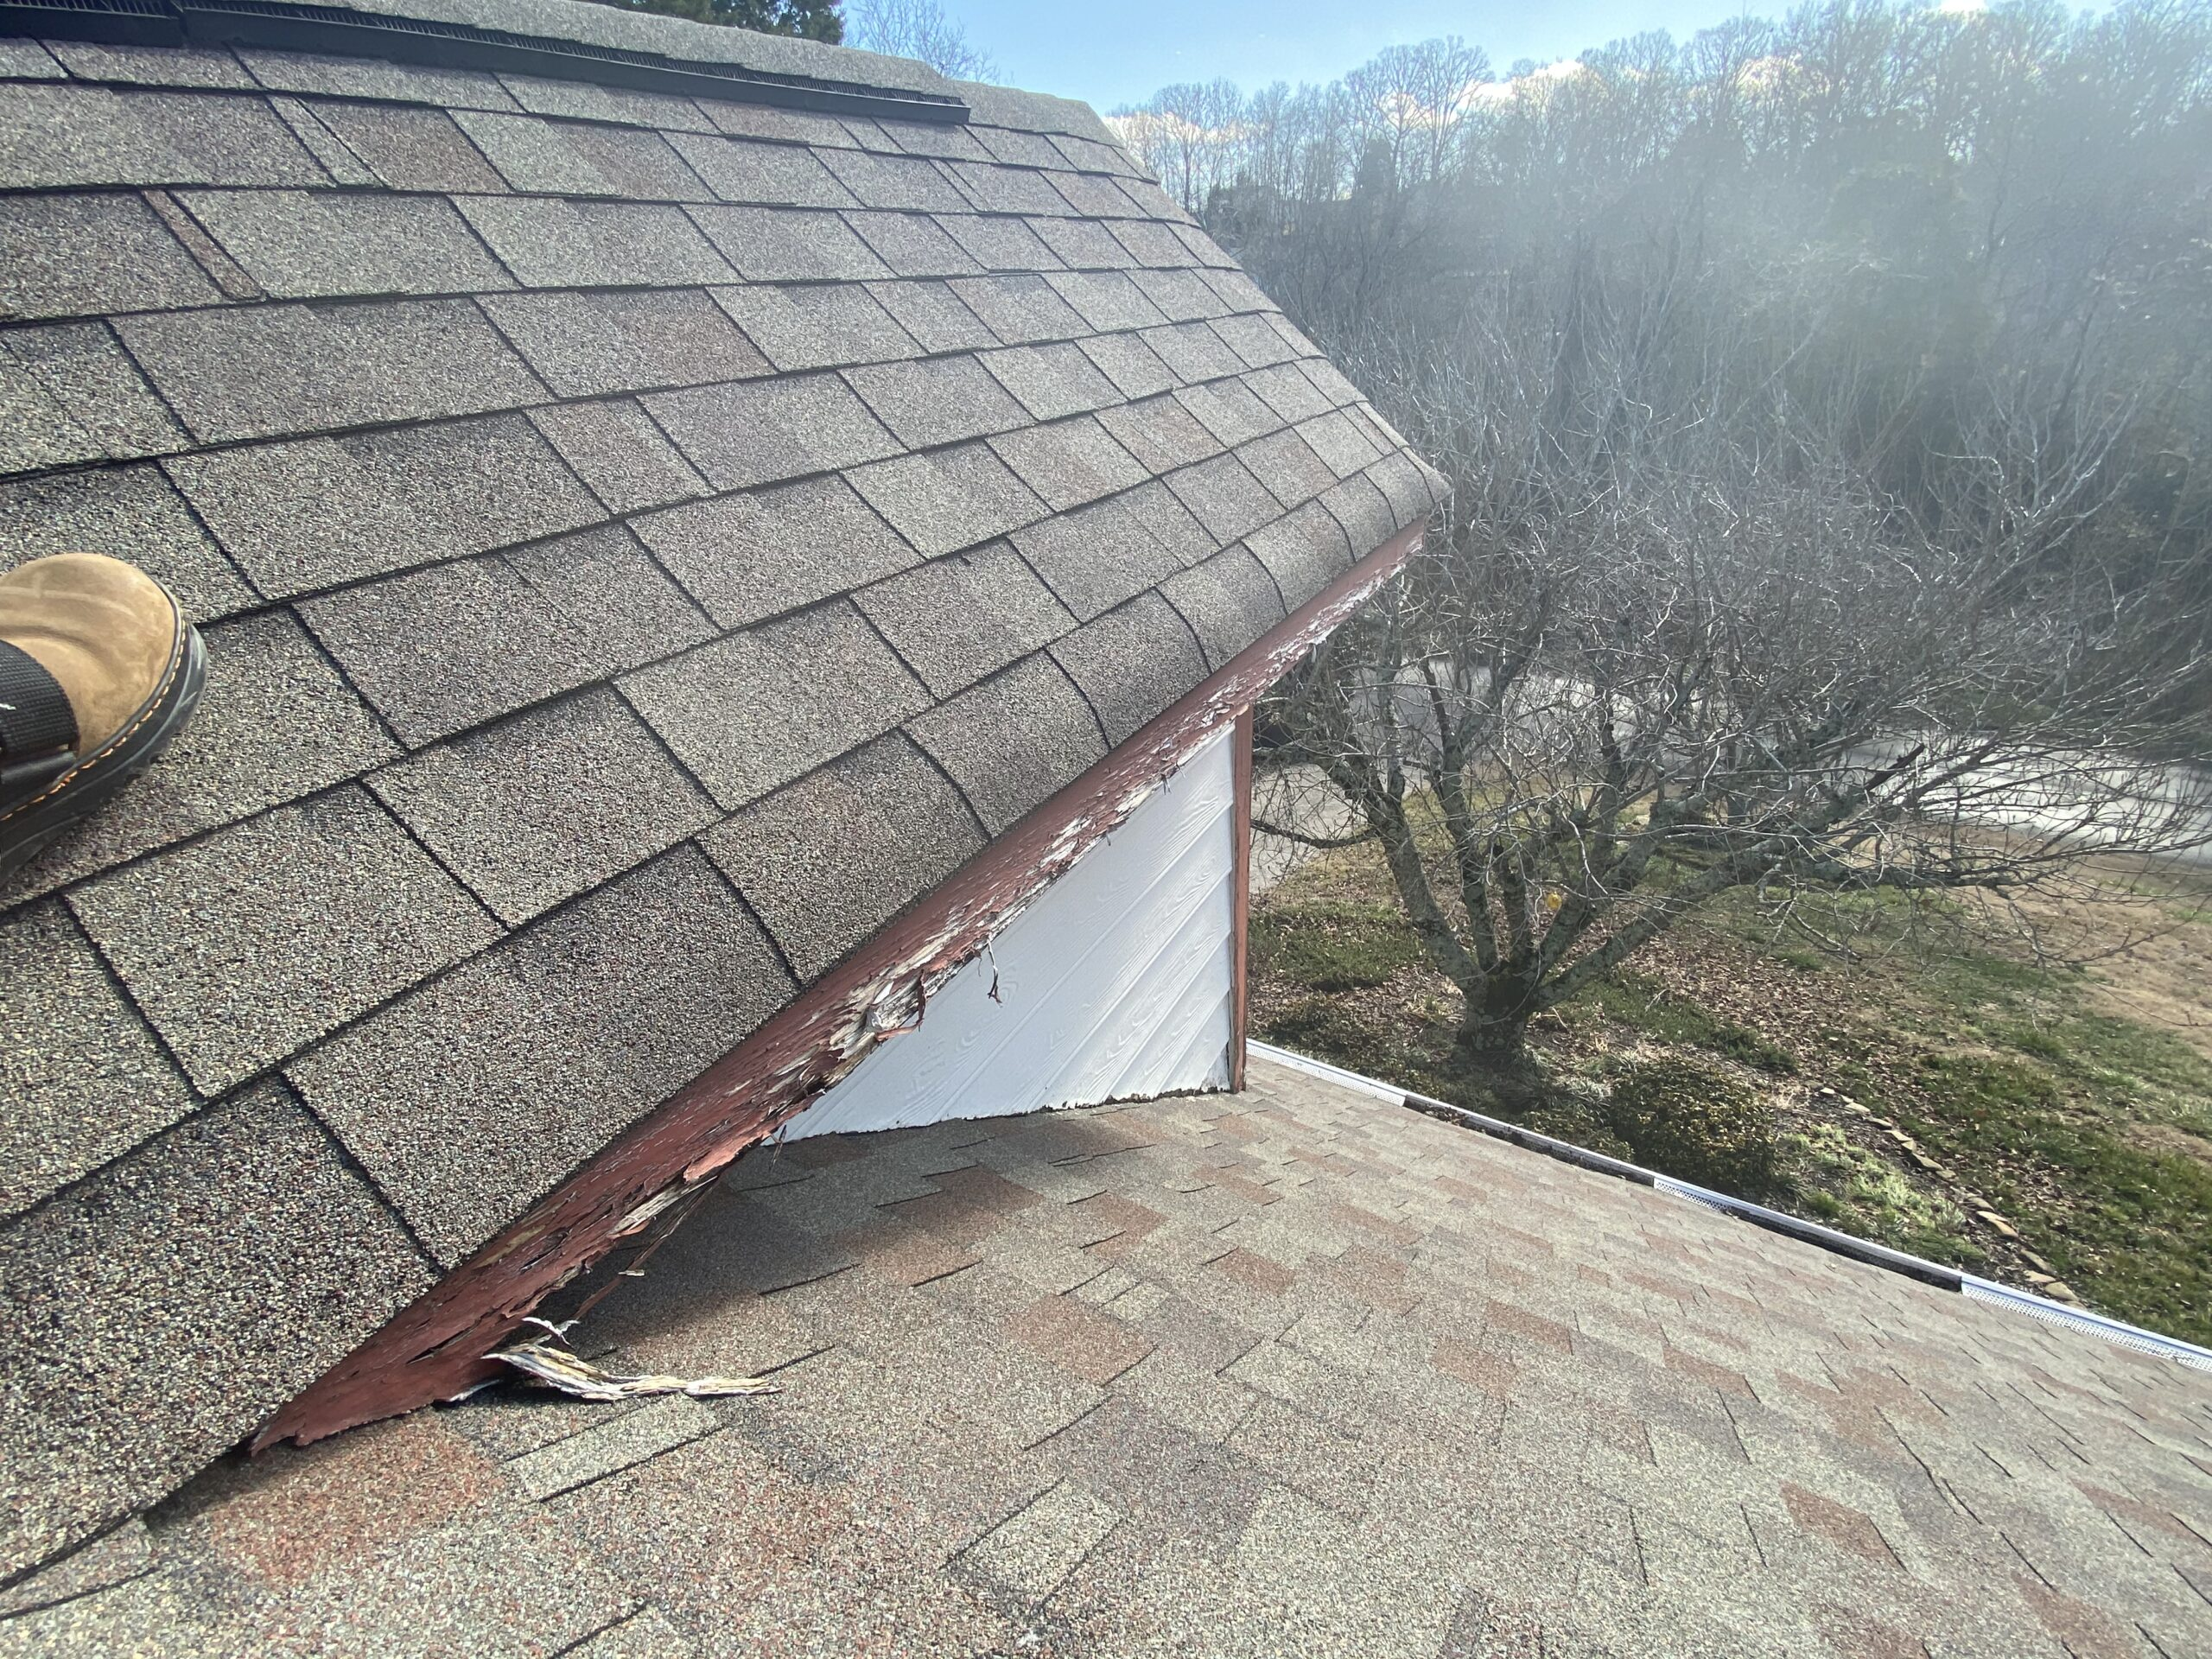 This is a picture of a white and red dormer with rotting fascia boards